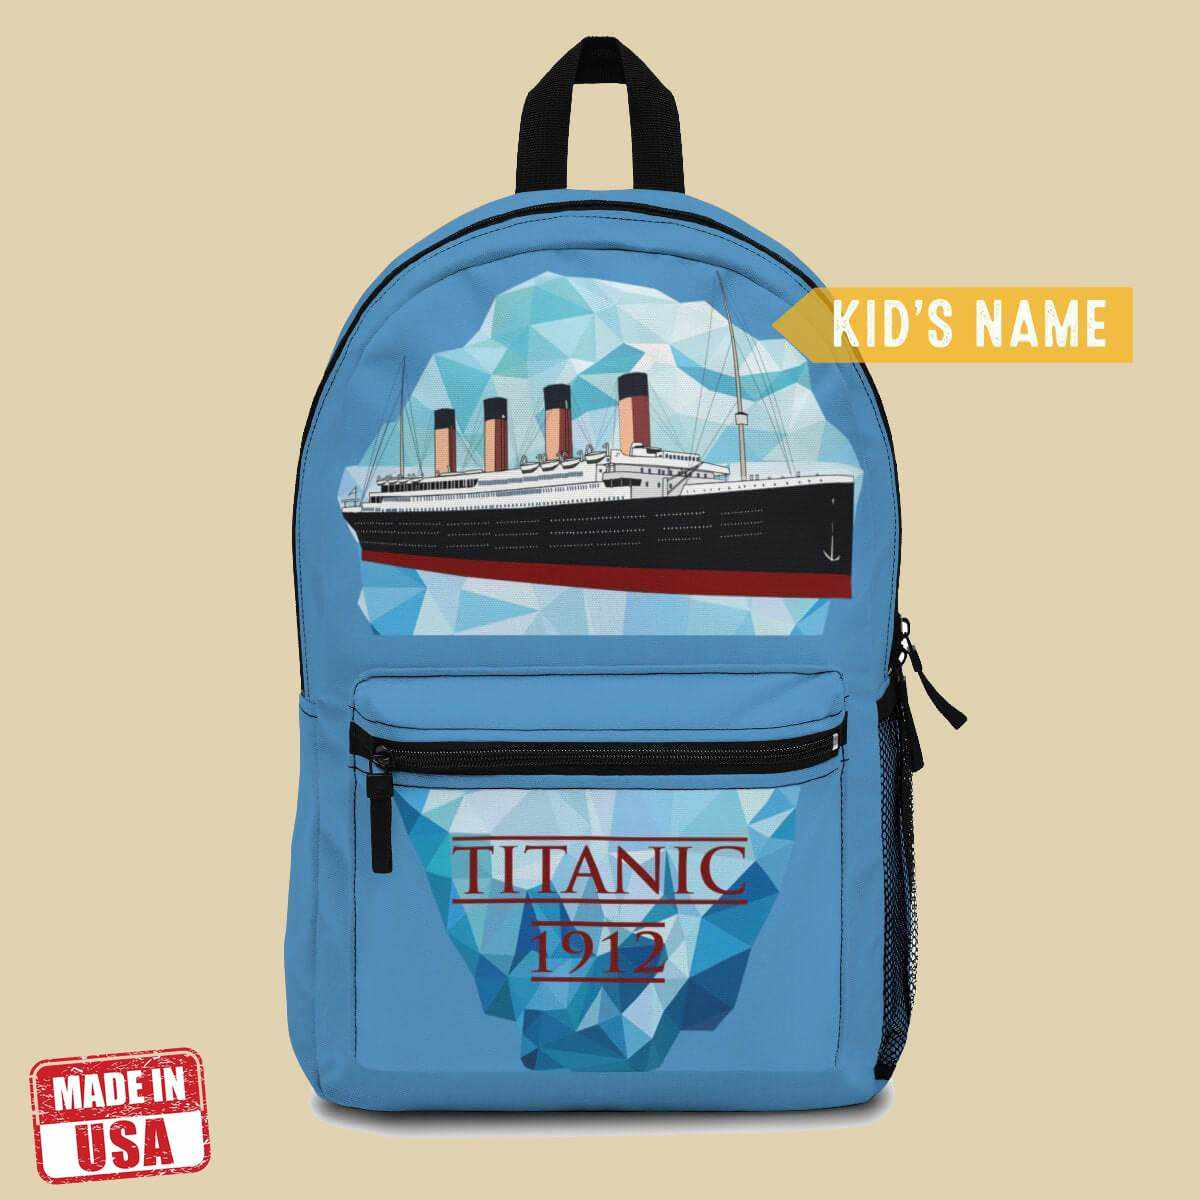 [Bestseller] School backpacks for girl, Titanic girls backpack, vintage kids backpack-School backpack-Printify-titanic-school-tote-bag-backpack-duffel-drawstring-white-star-line-Titanic shop